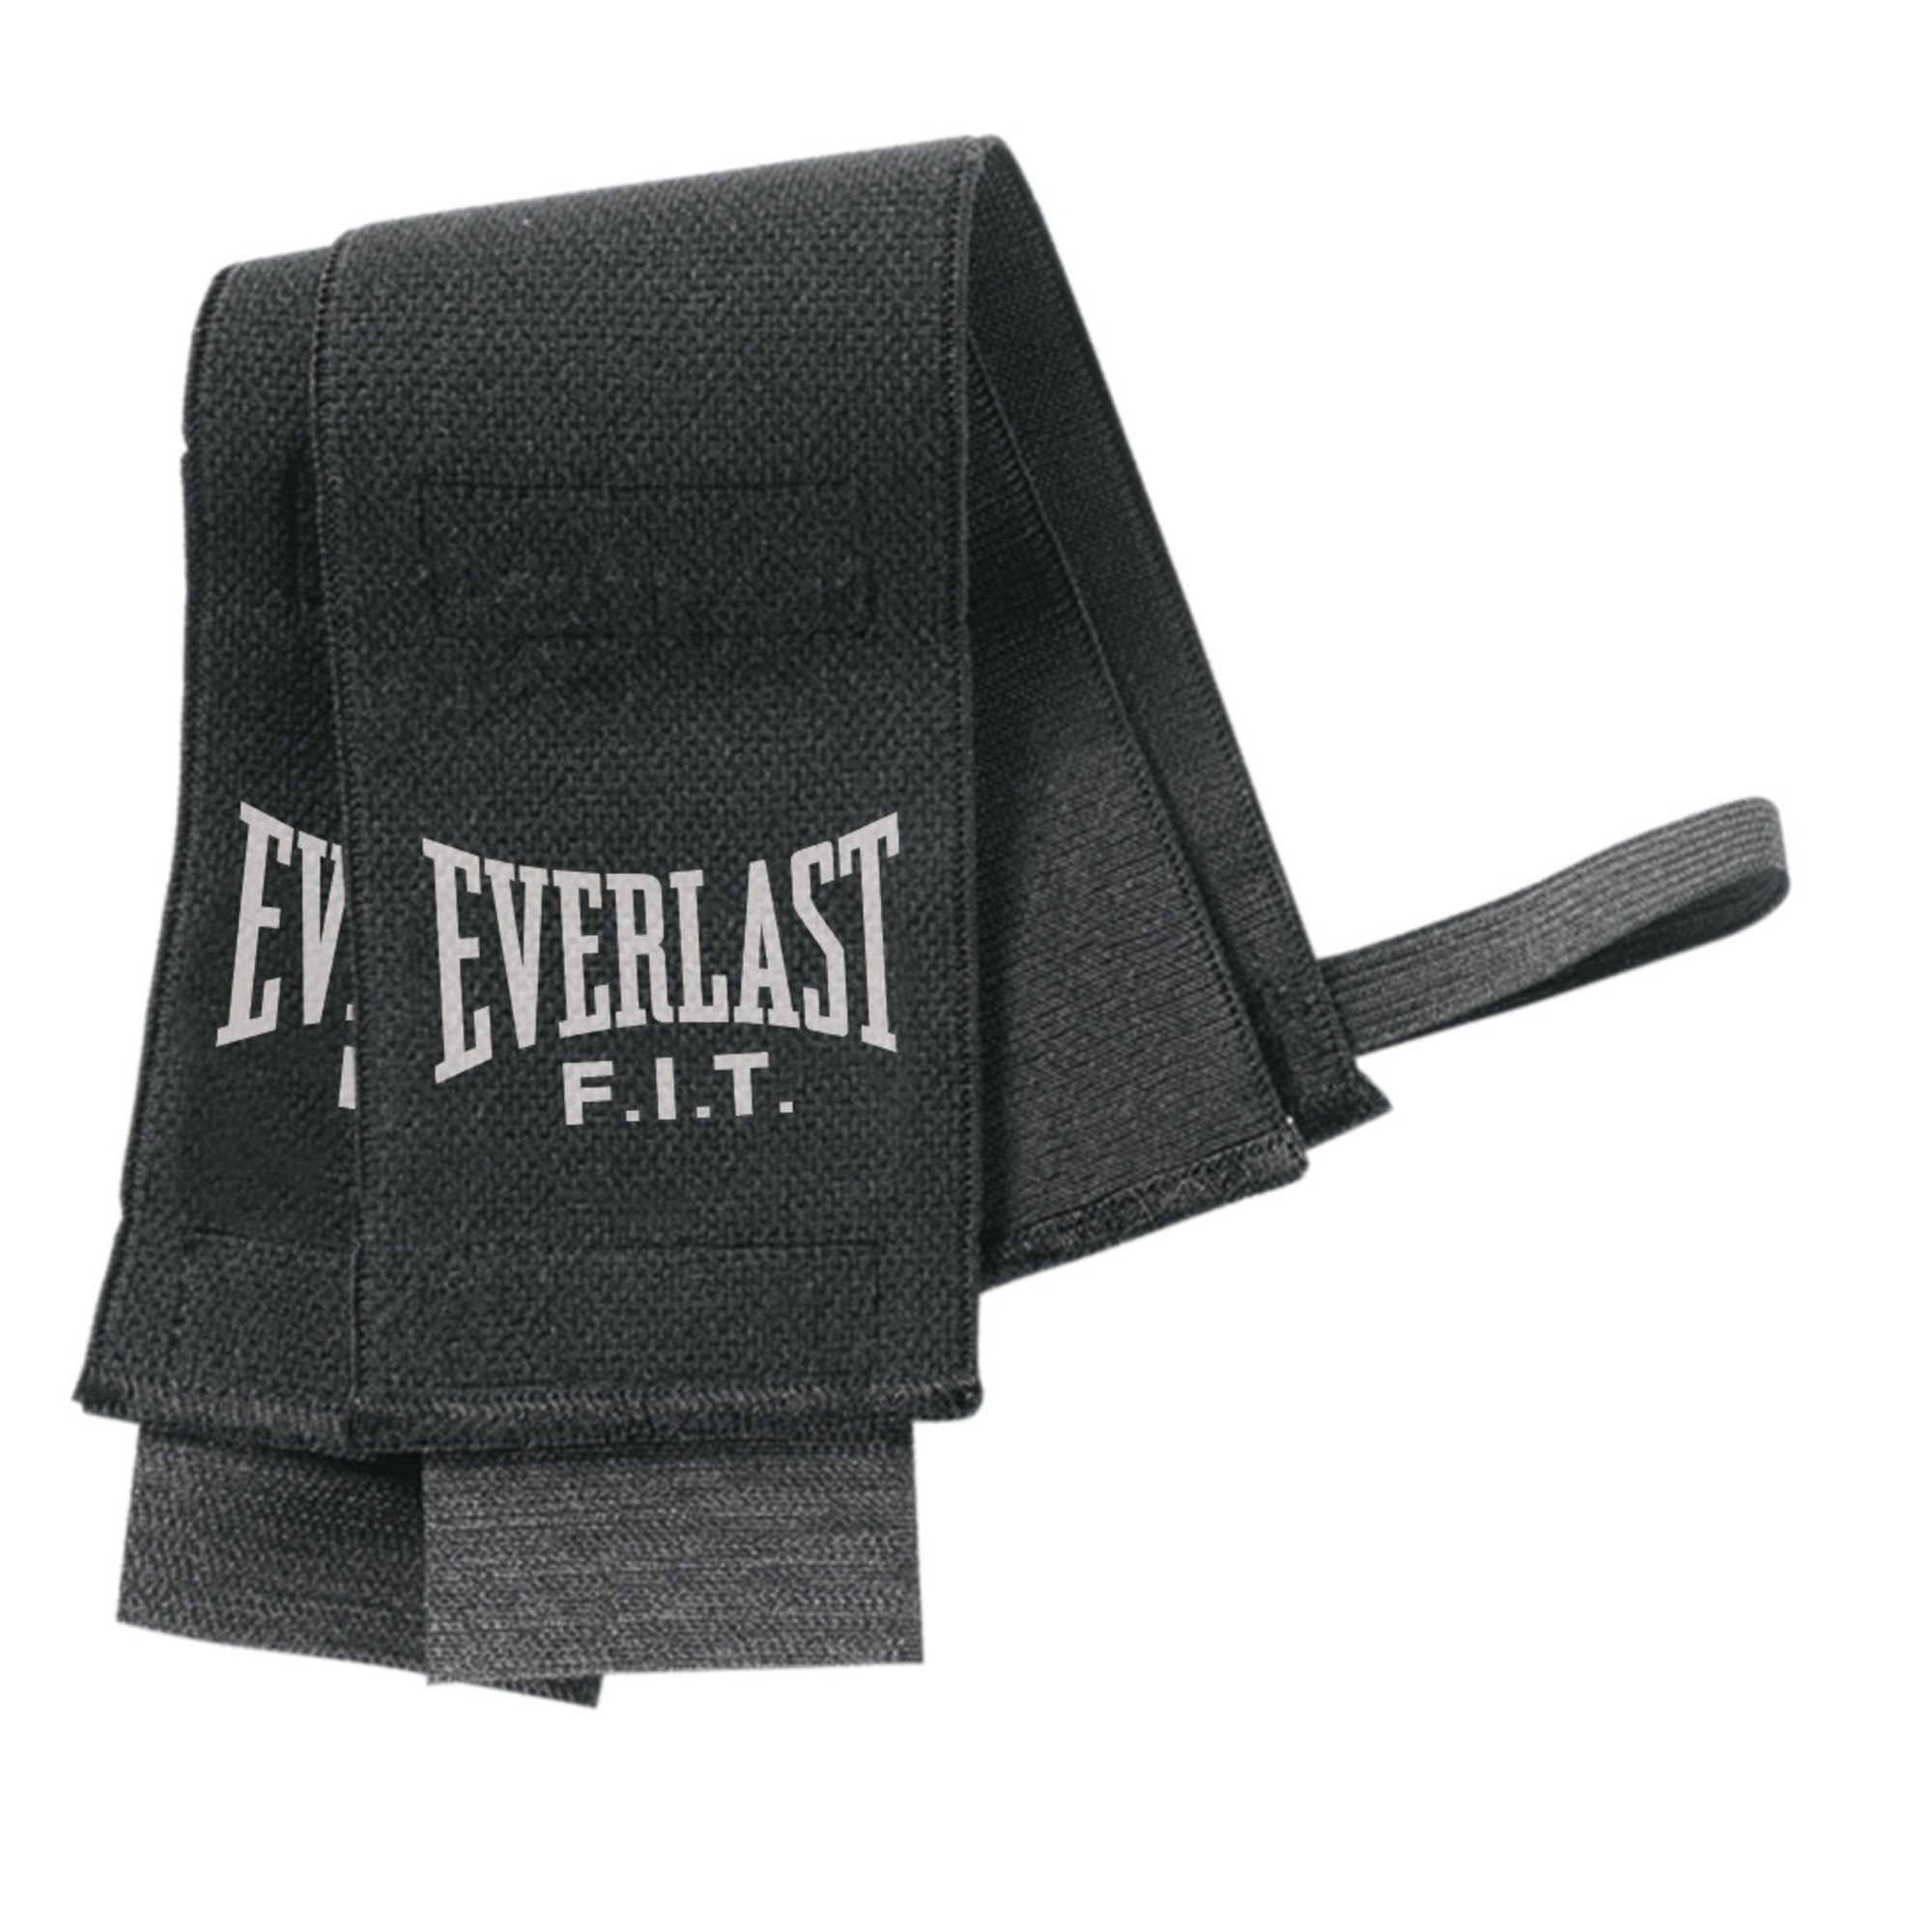 Everlast Wrist Support by Everlast Canada